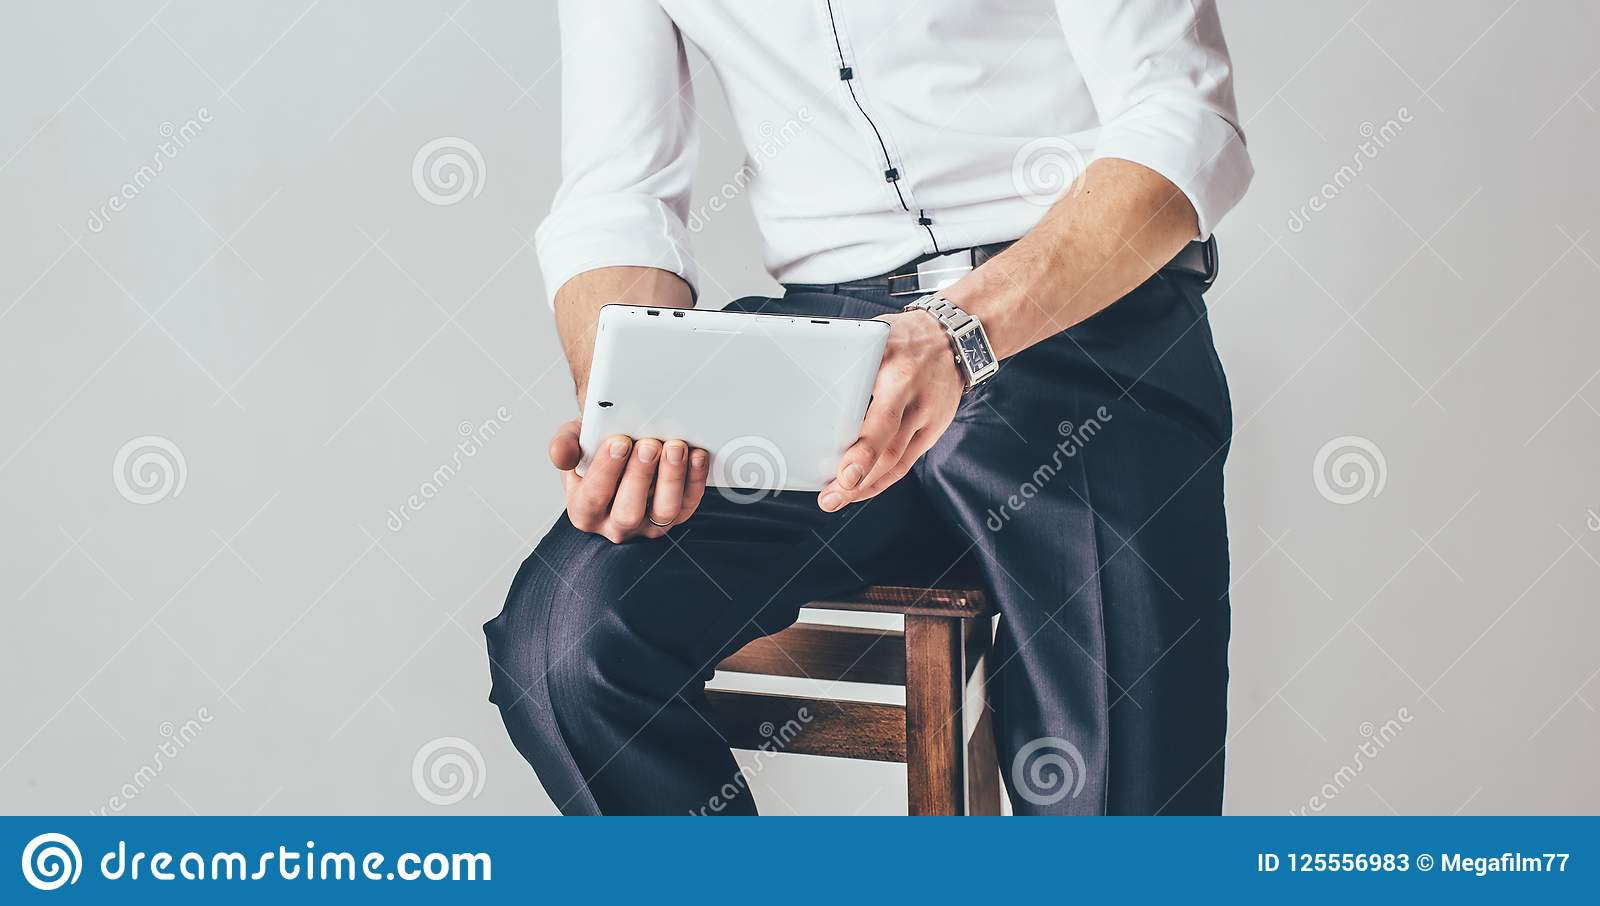 The man holds a tablet in his hands on the white background. He sits on a chair dressed in a swanky white shirt and pants